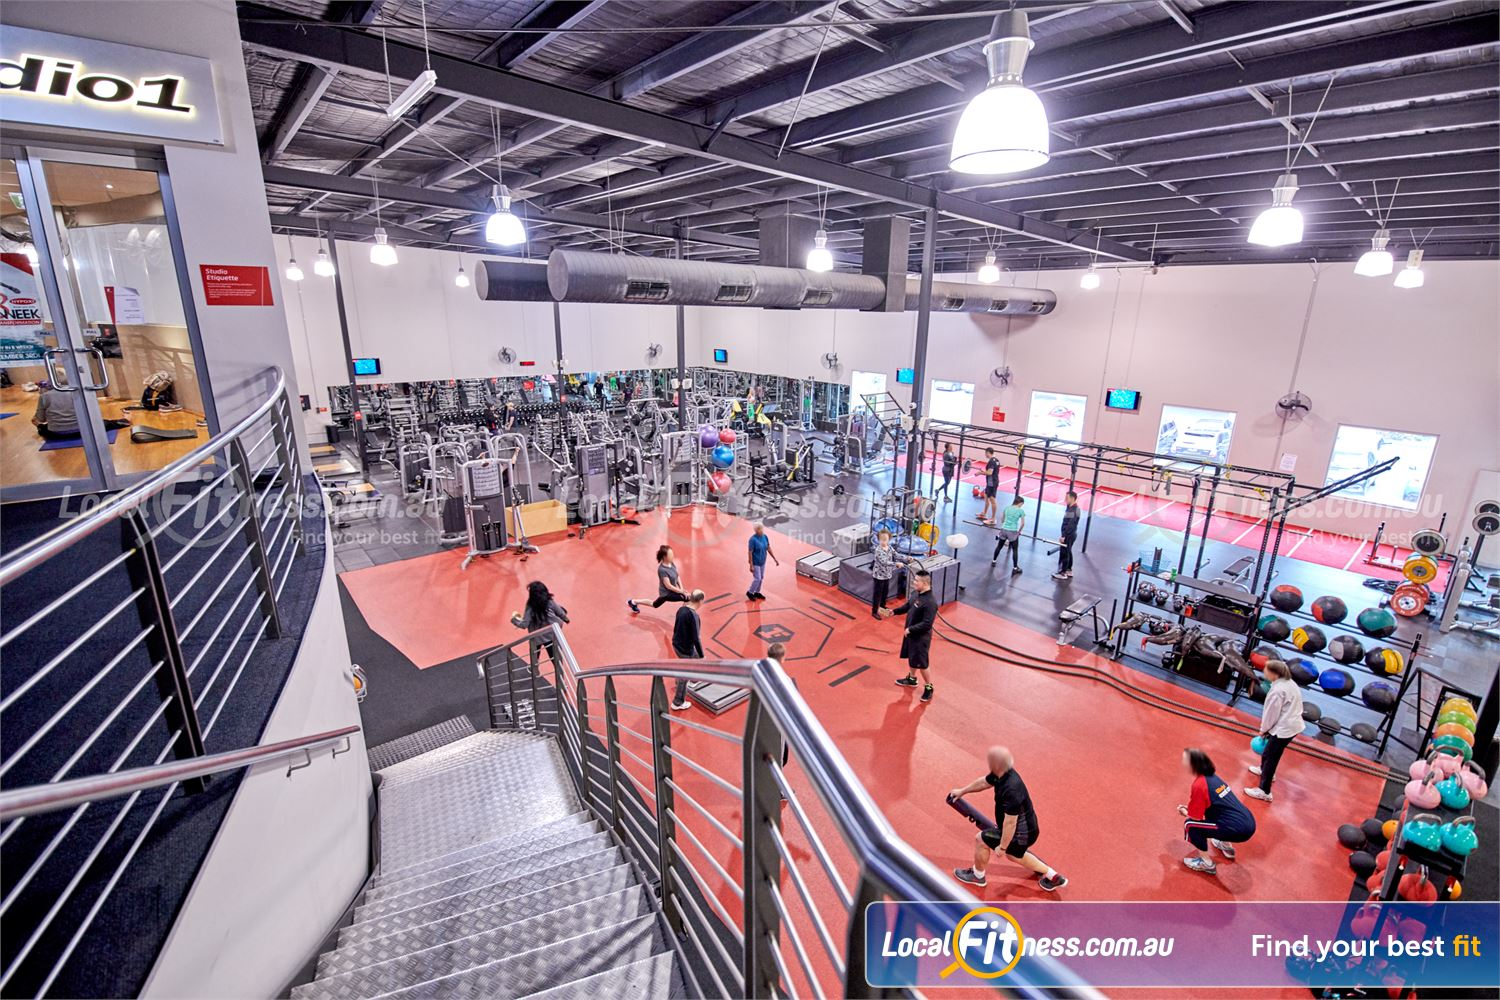 Fitness First Near Burwood East Our Glen Waverley gym provides an emphasis on functional and innovative training.